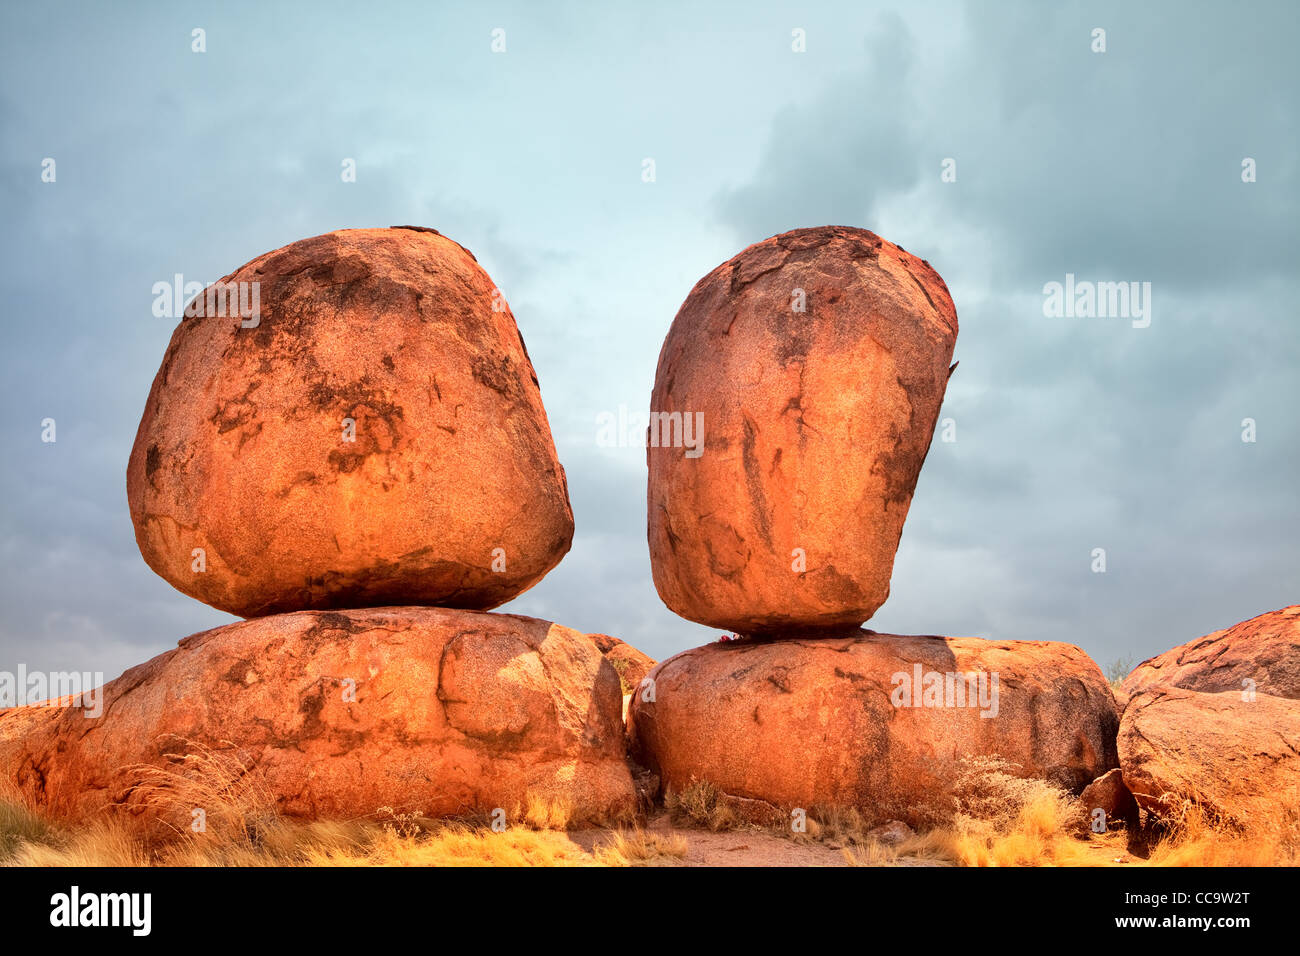 devils marbles, Northern Territory Australia eroded red rock formations Shape formed by temperature difference and - Stock Image